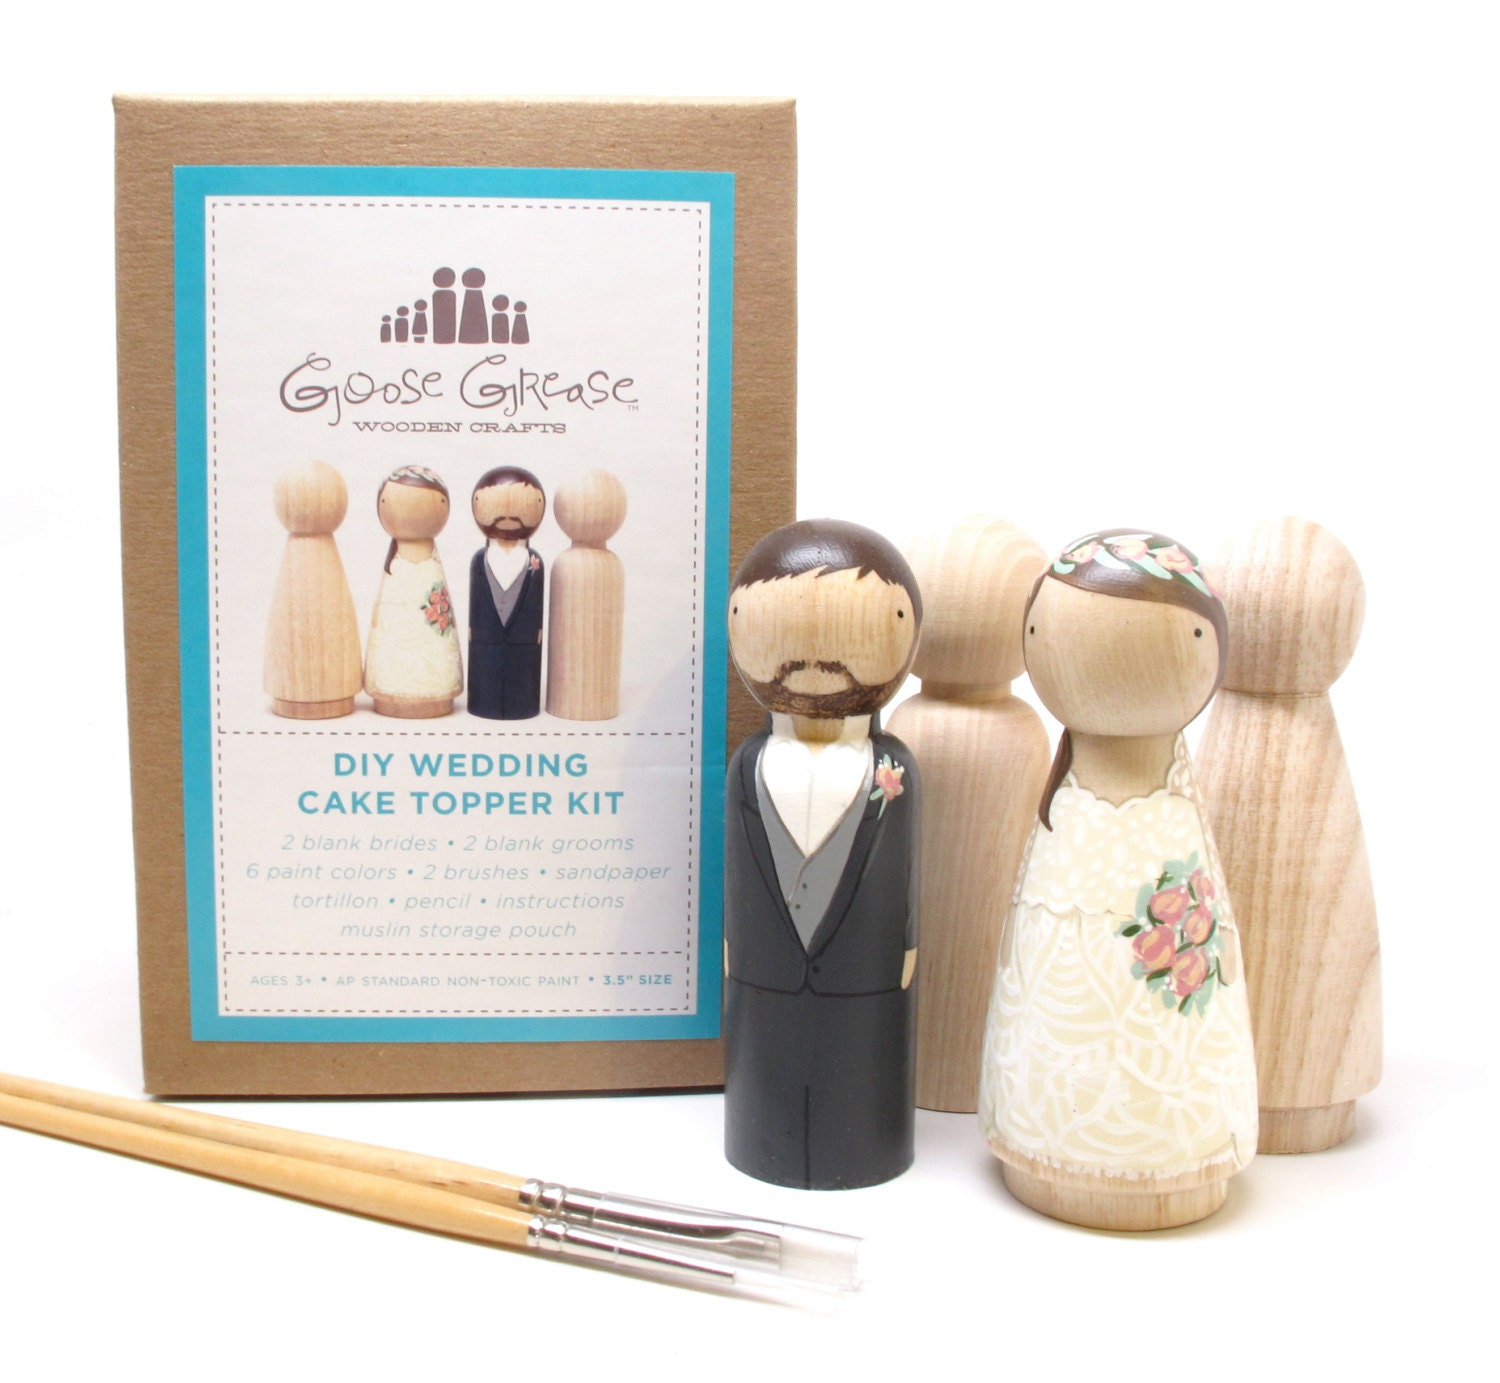 Cake topper wedding cake topper wooden cake topper kit extra zoom solutioingenieria Image collections